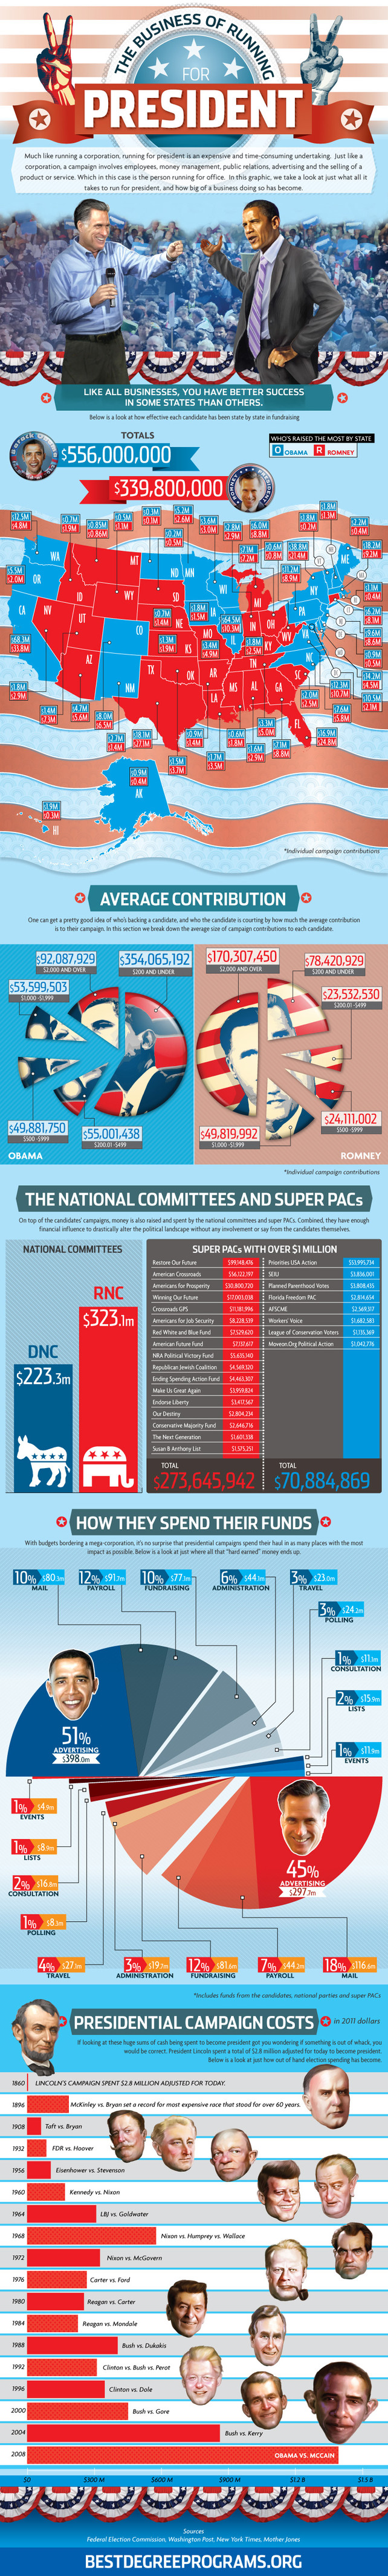 Presidential Campaign Spending Infographic